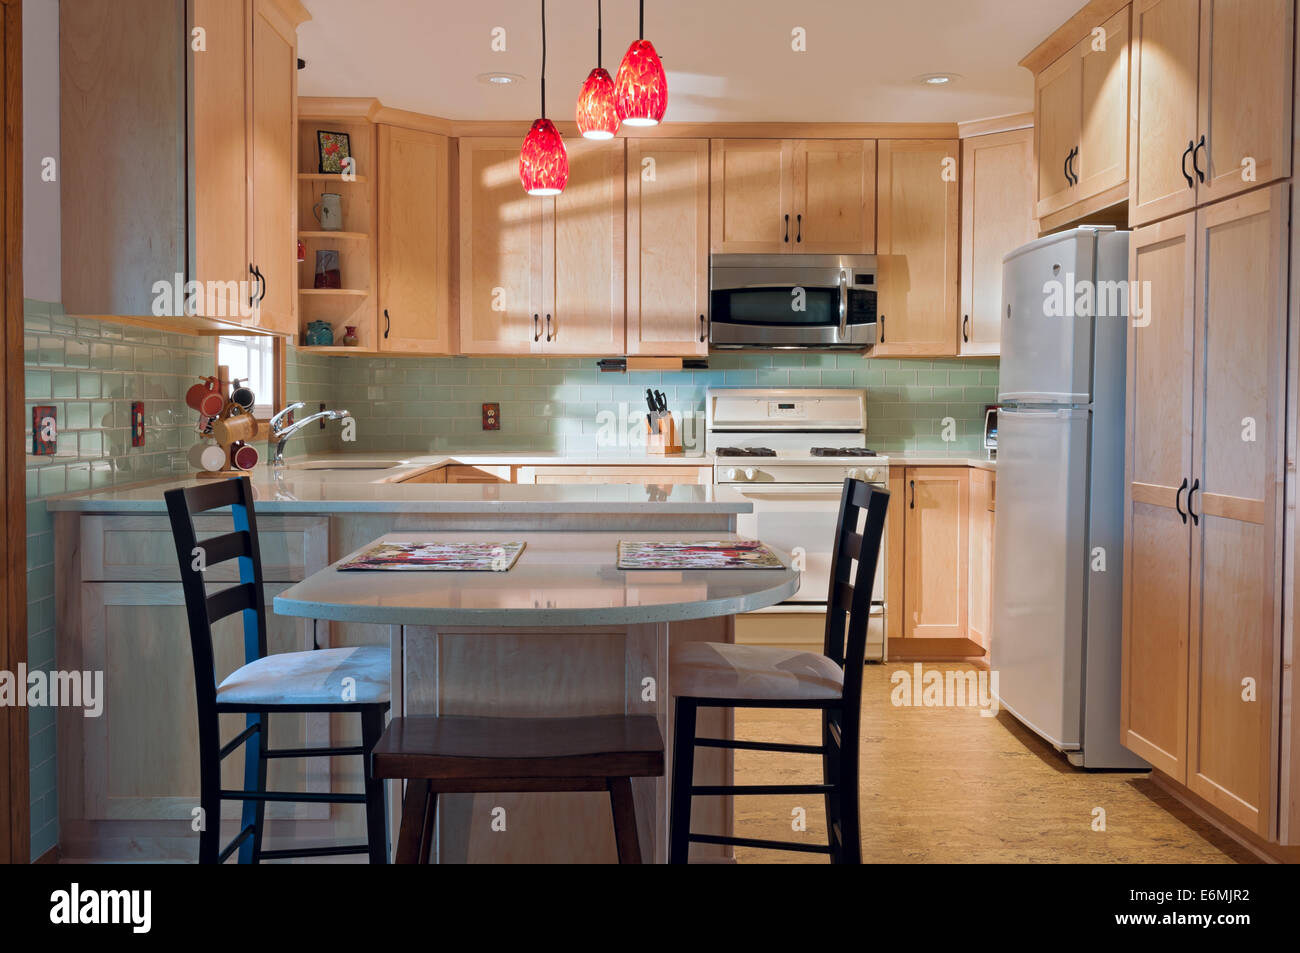 newly remodeled kitchen interior with cork floors maple cabinets and glass tile backsplash - Newly Remodeled Kitchens